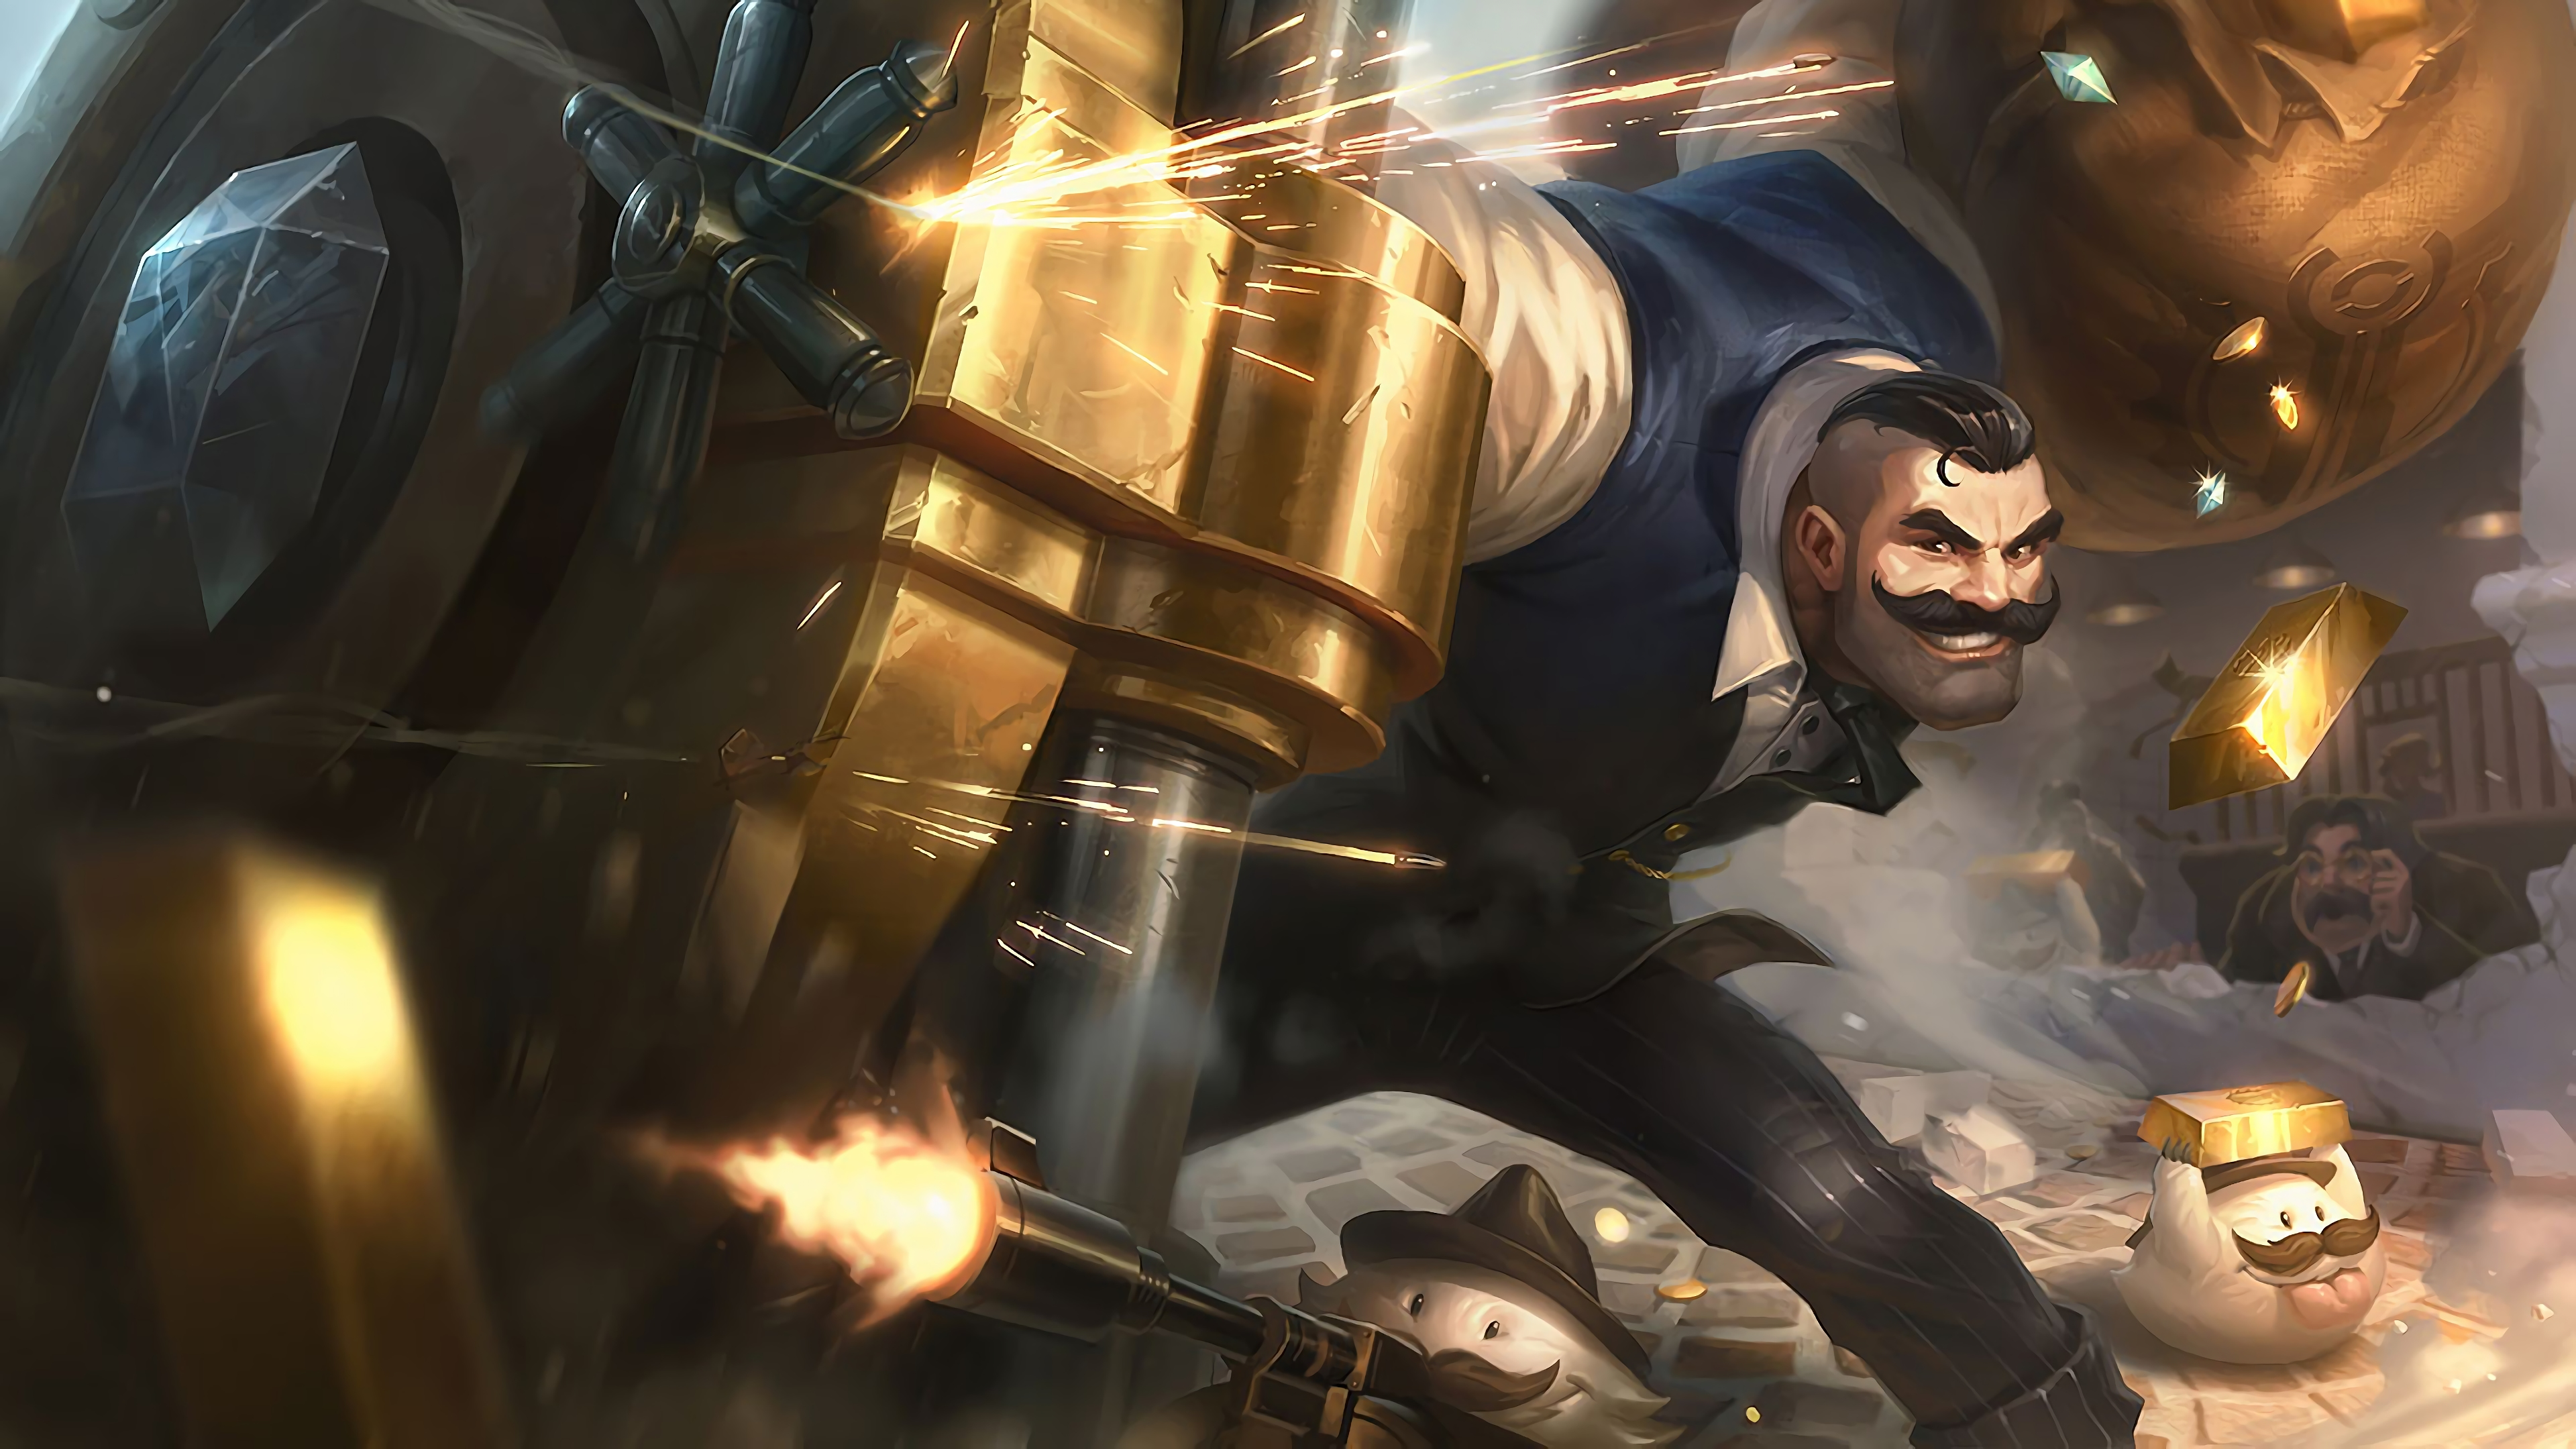 mafia braum lol splash art league of legends lol 1574103882 - Mafia Braum LoL Splash Art League of Legends lol - league of legends, Braum